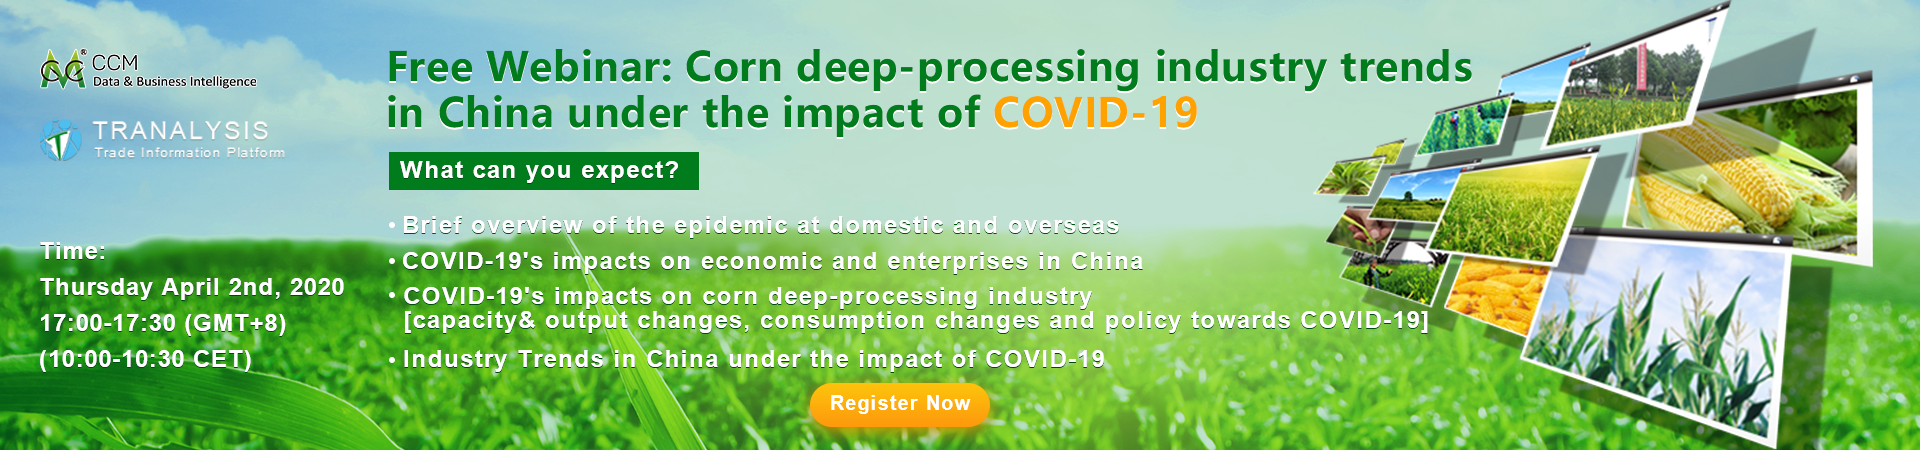 Corn deep-processing industry trends in China under the impact of COVID-19